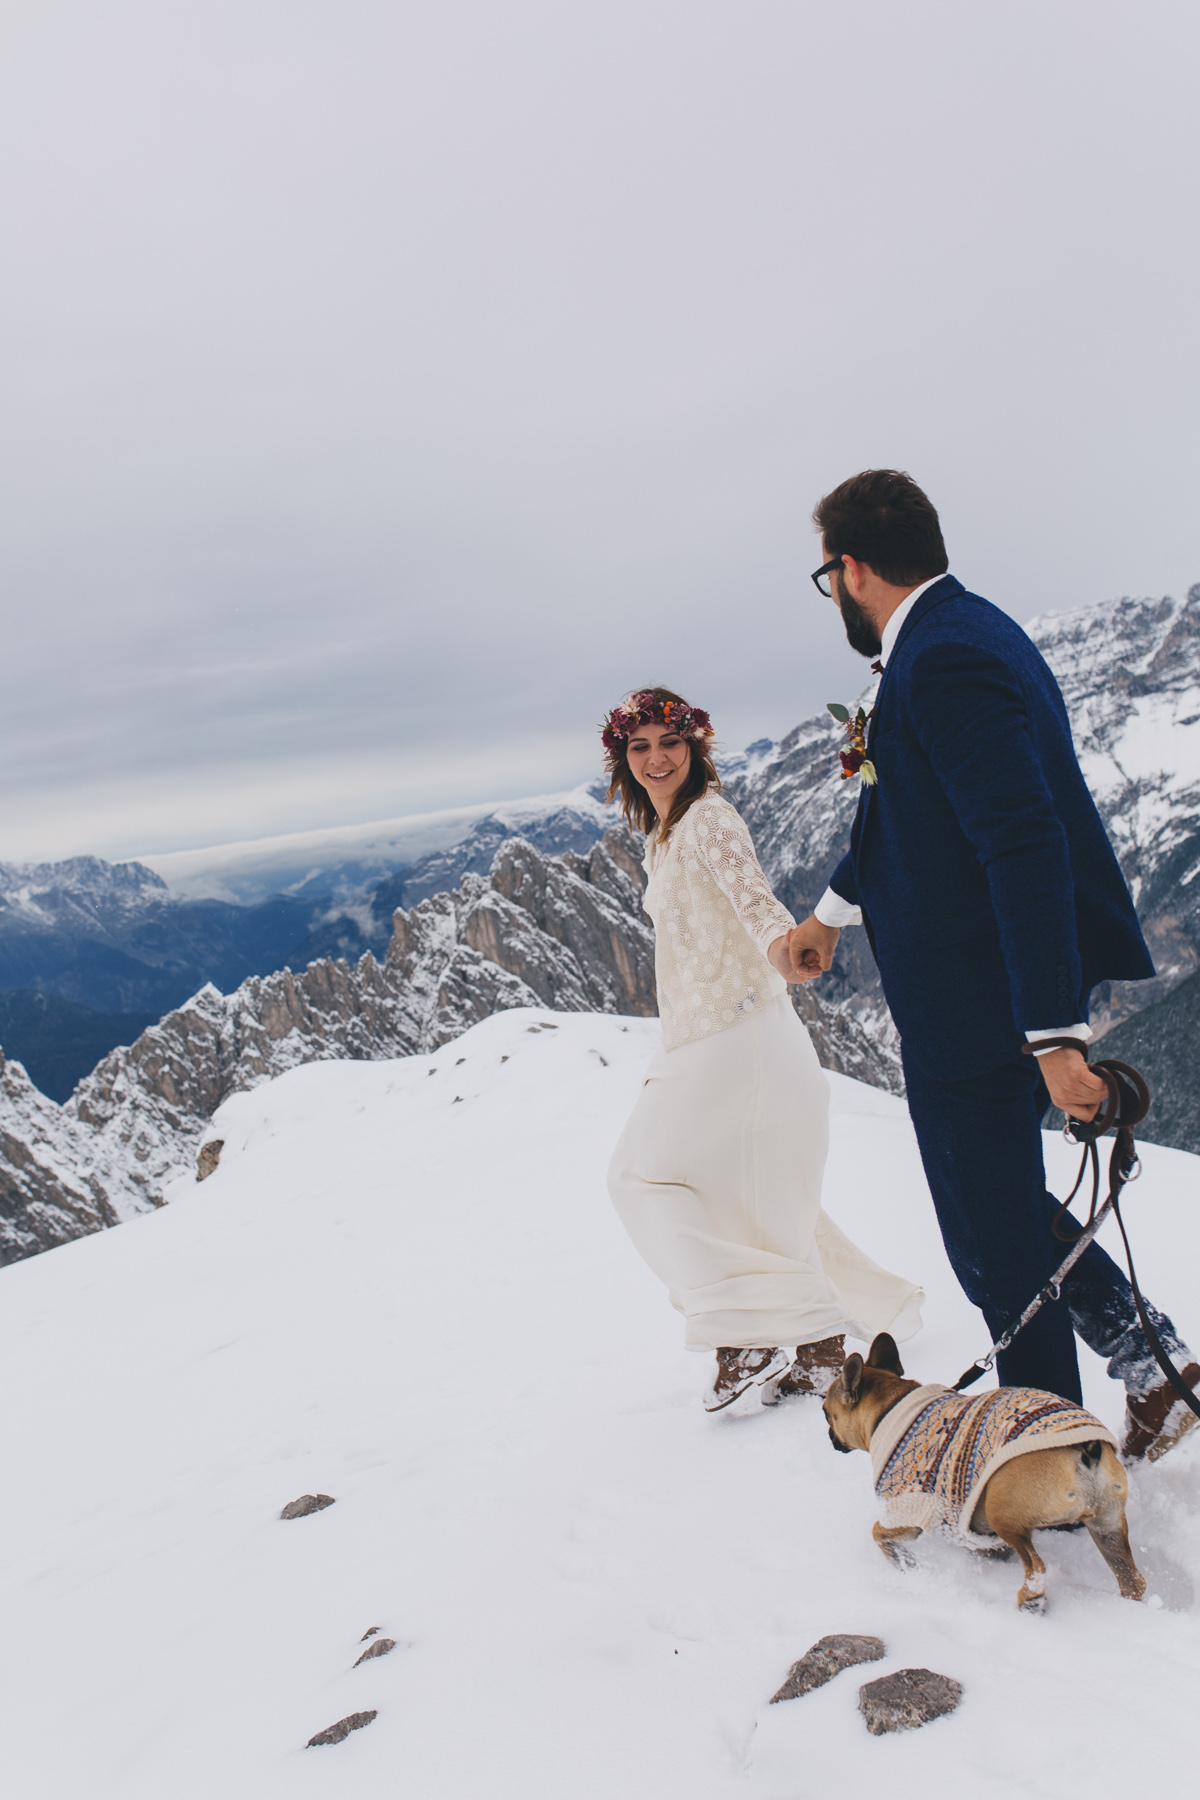 winter-mountain-wedding-hafelekar-maria-luise-bauer-photography-wedding-with-dogs-21